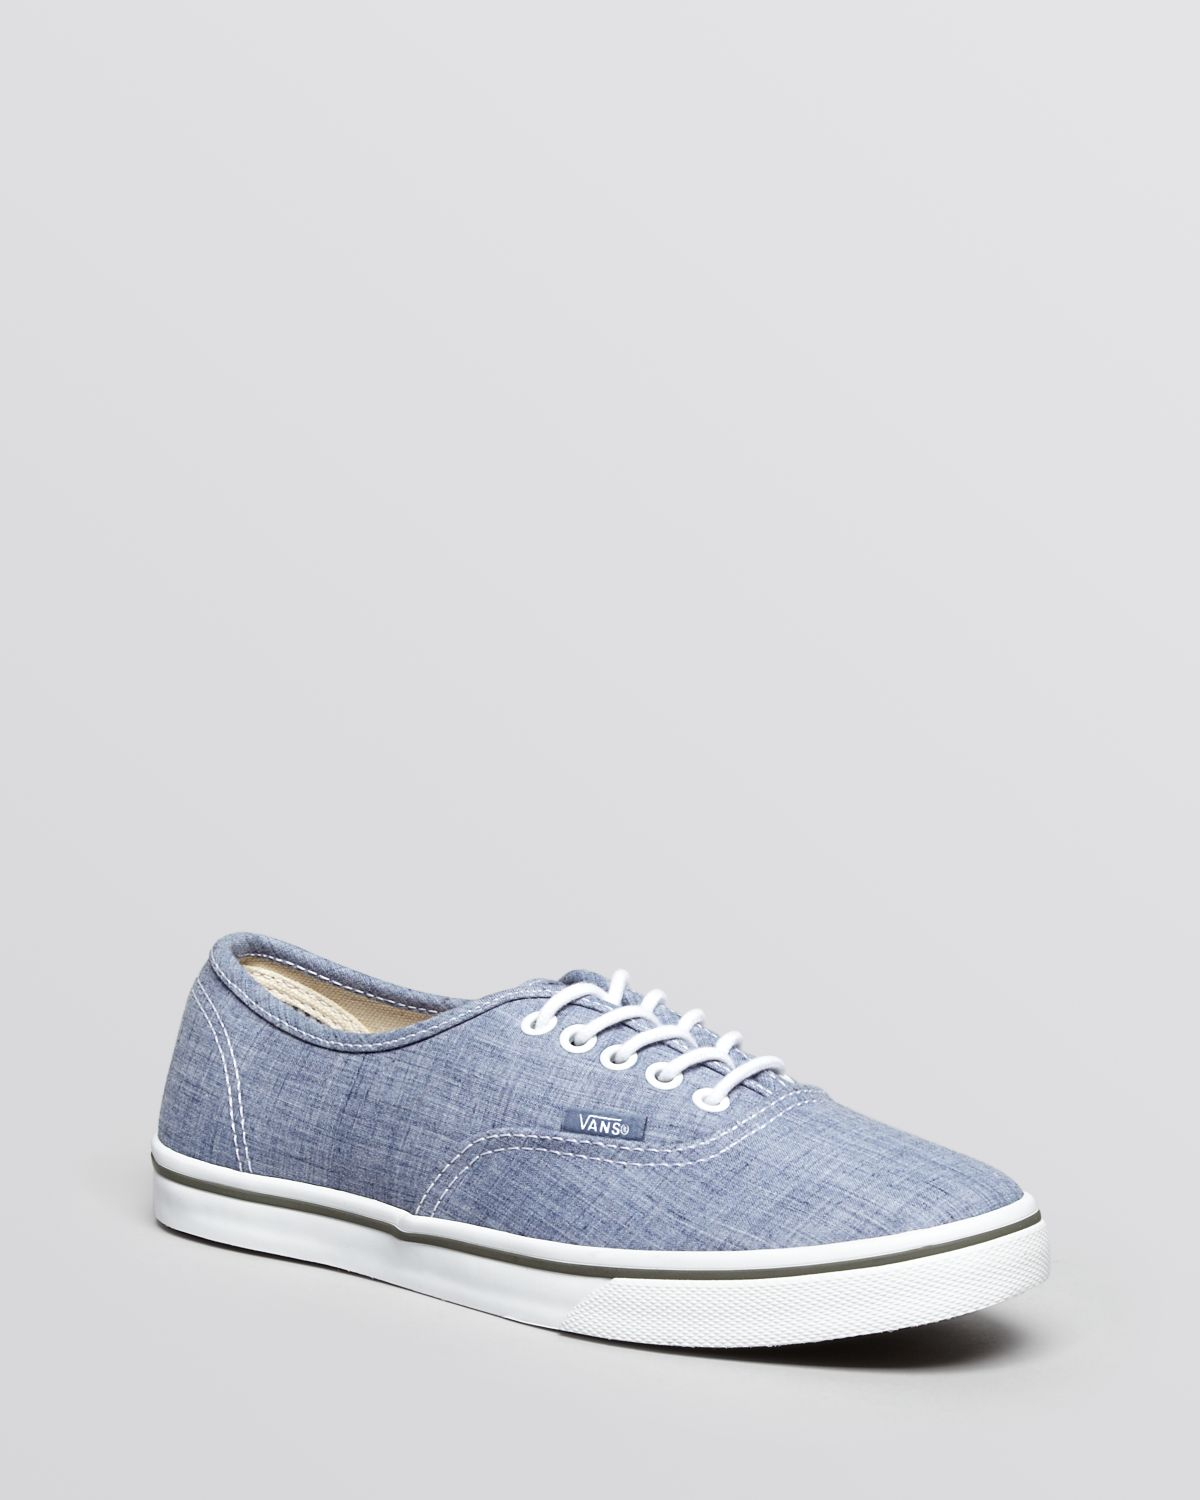 Lyst - Vans Flat Lace Up Sneakers Authentic Lo Pro Chambray in Blue de453f69befc